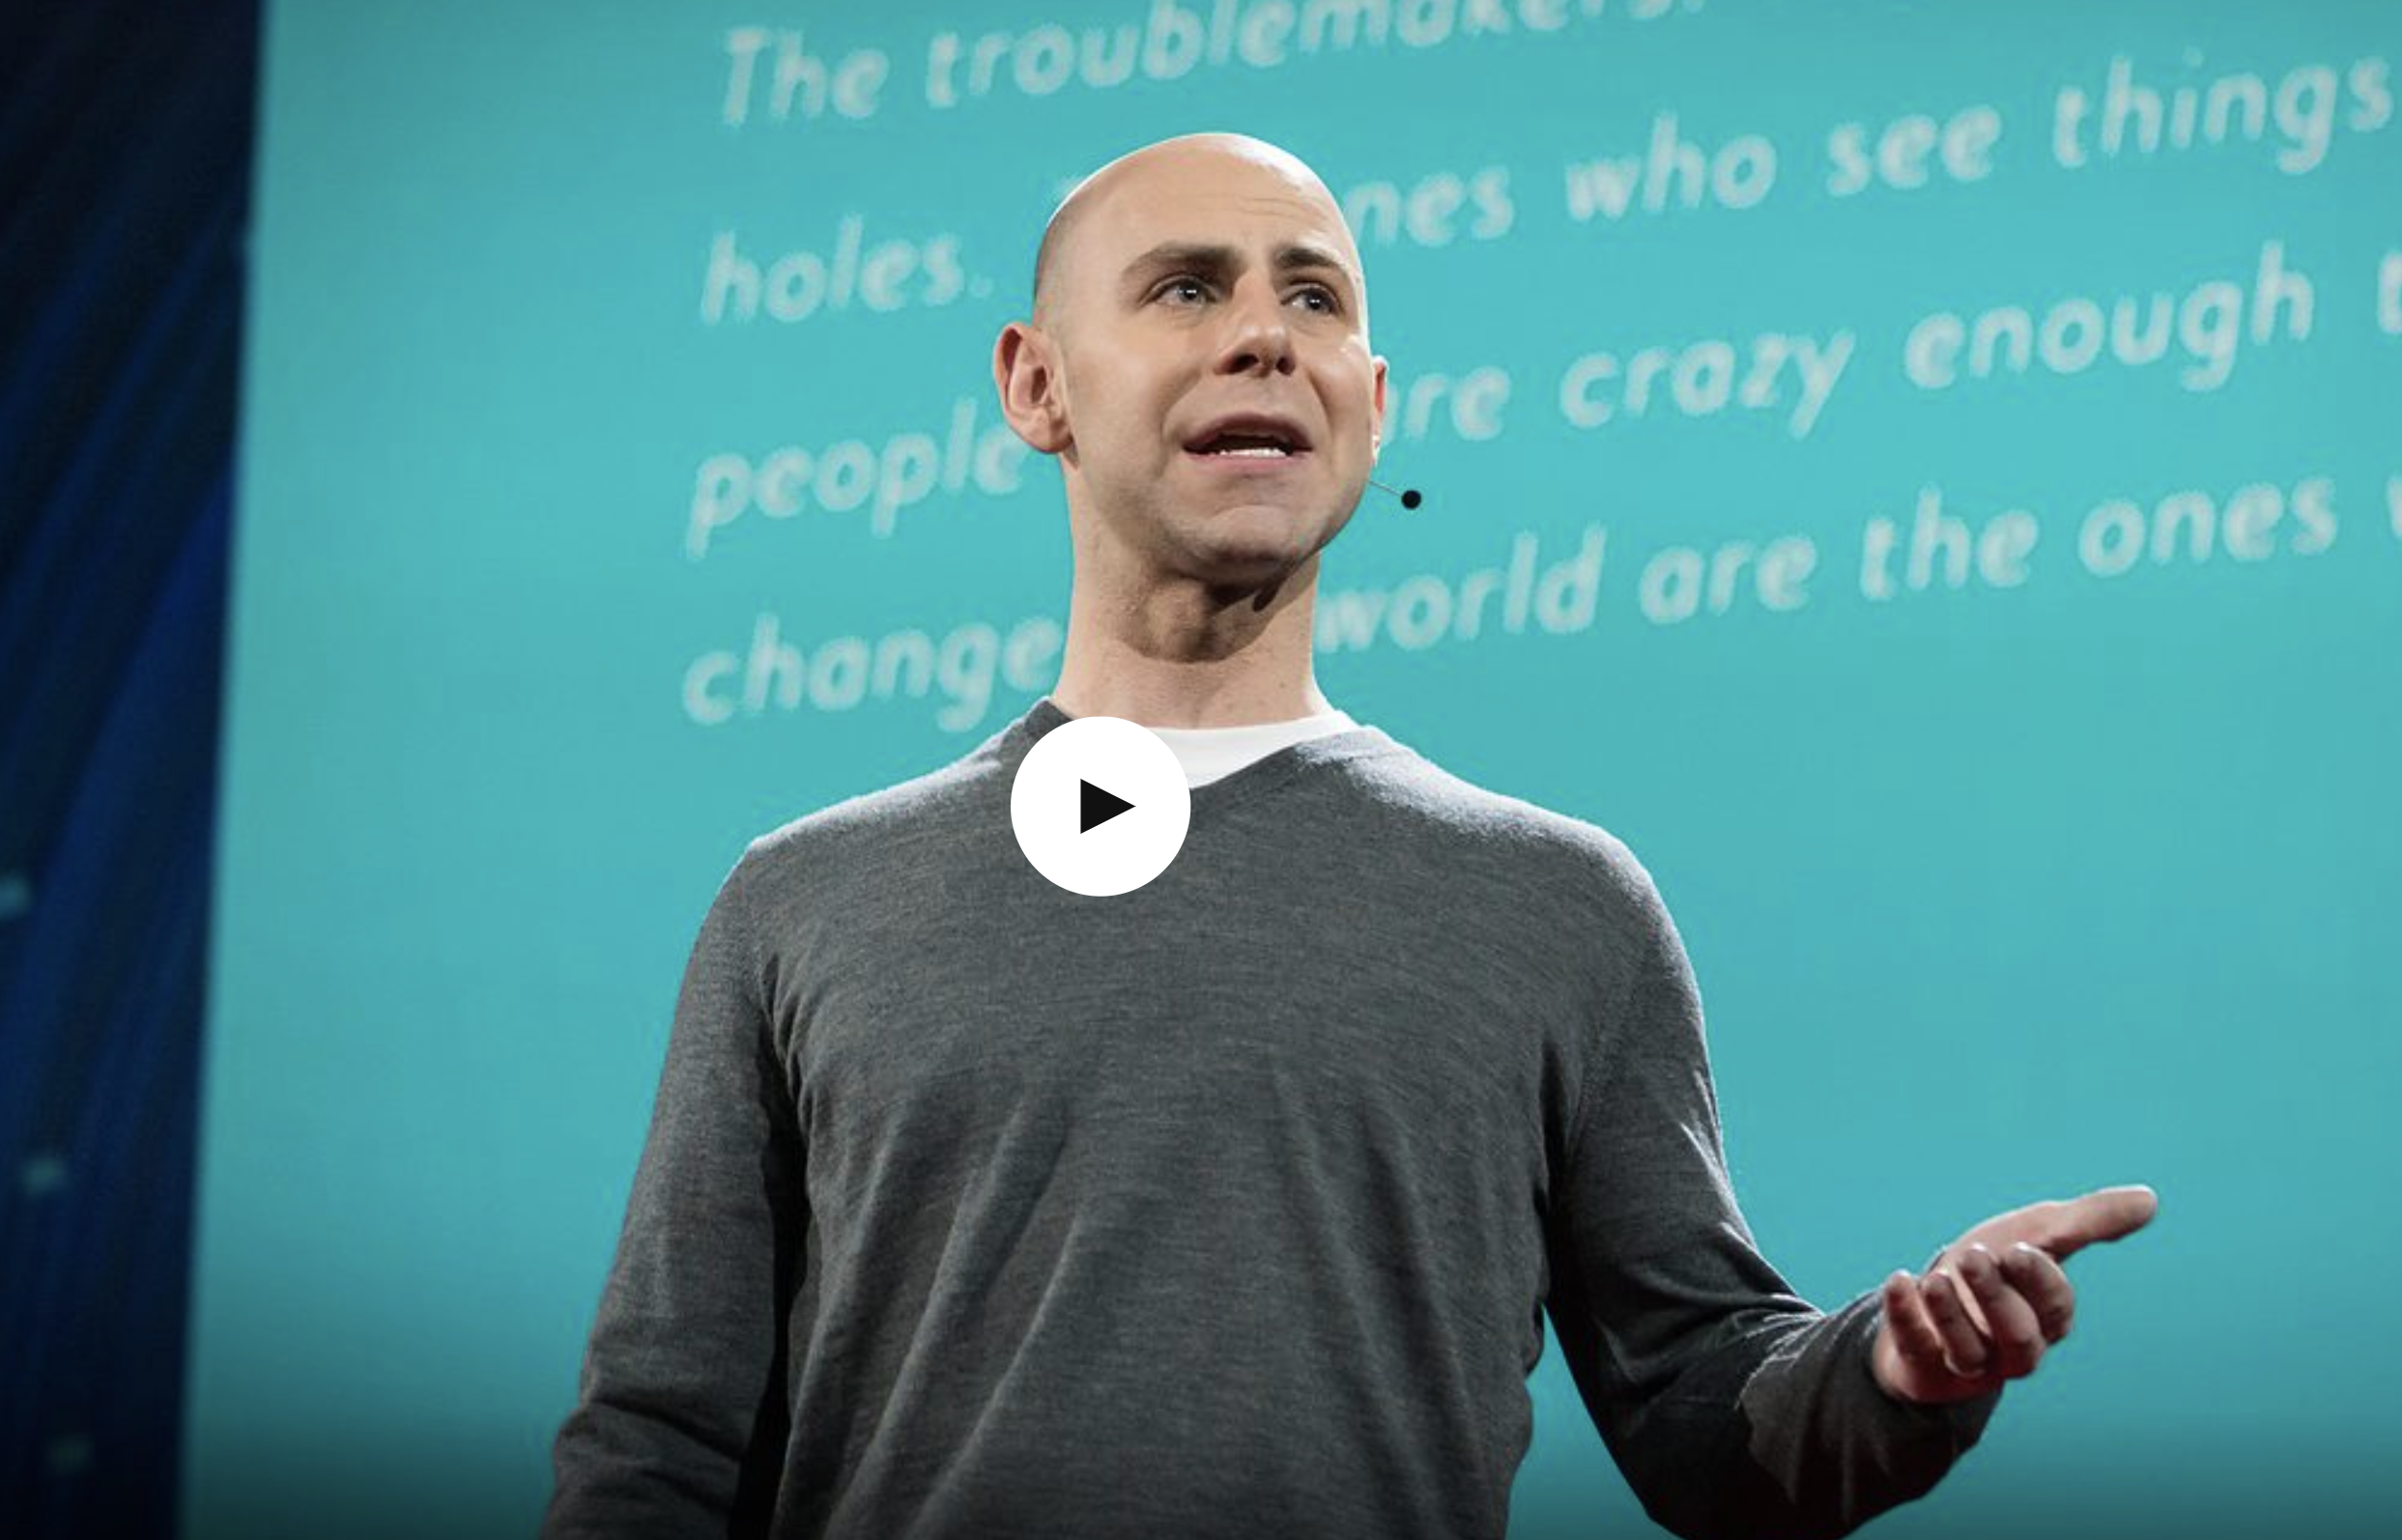 Adam Grant - TED Talk. Image rights of TED.com